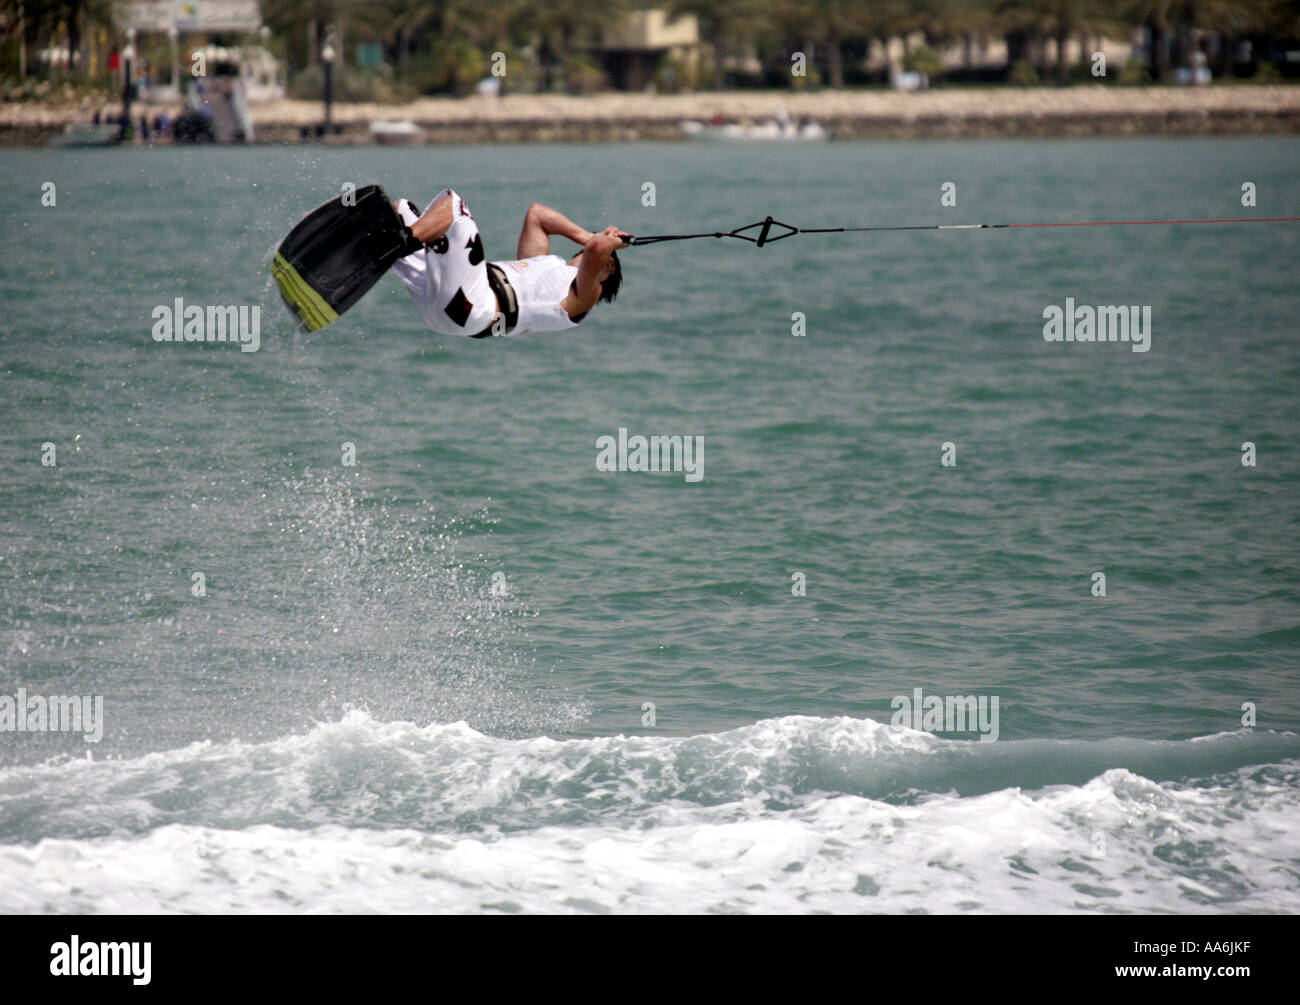 Chad Sharpe of Canada at the Wakeboard World Cup tournament in Doha Qatar April 22 2006 - Stock Image